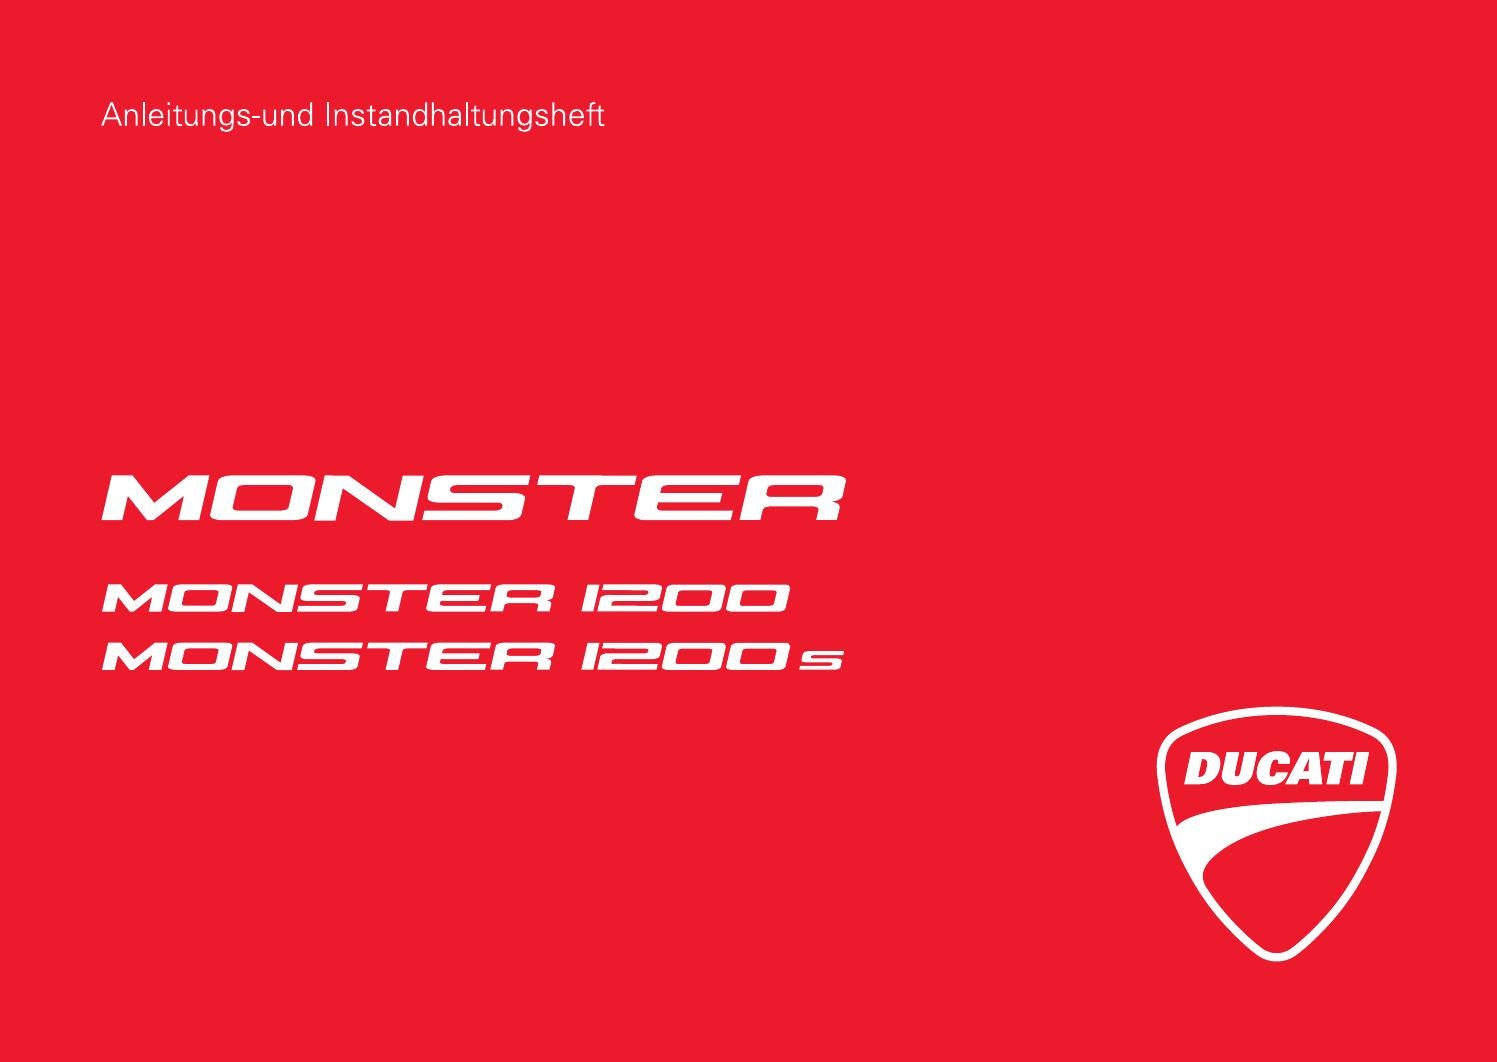 Anleitung MONSTER 1200s by DUCATI AUSTRIA - issuu